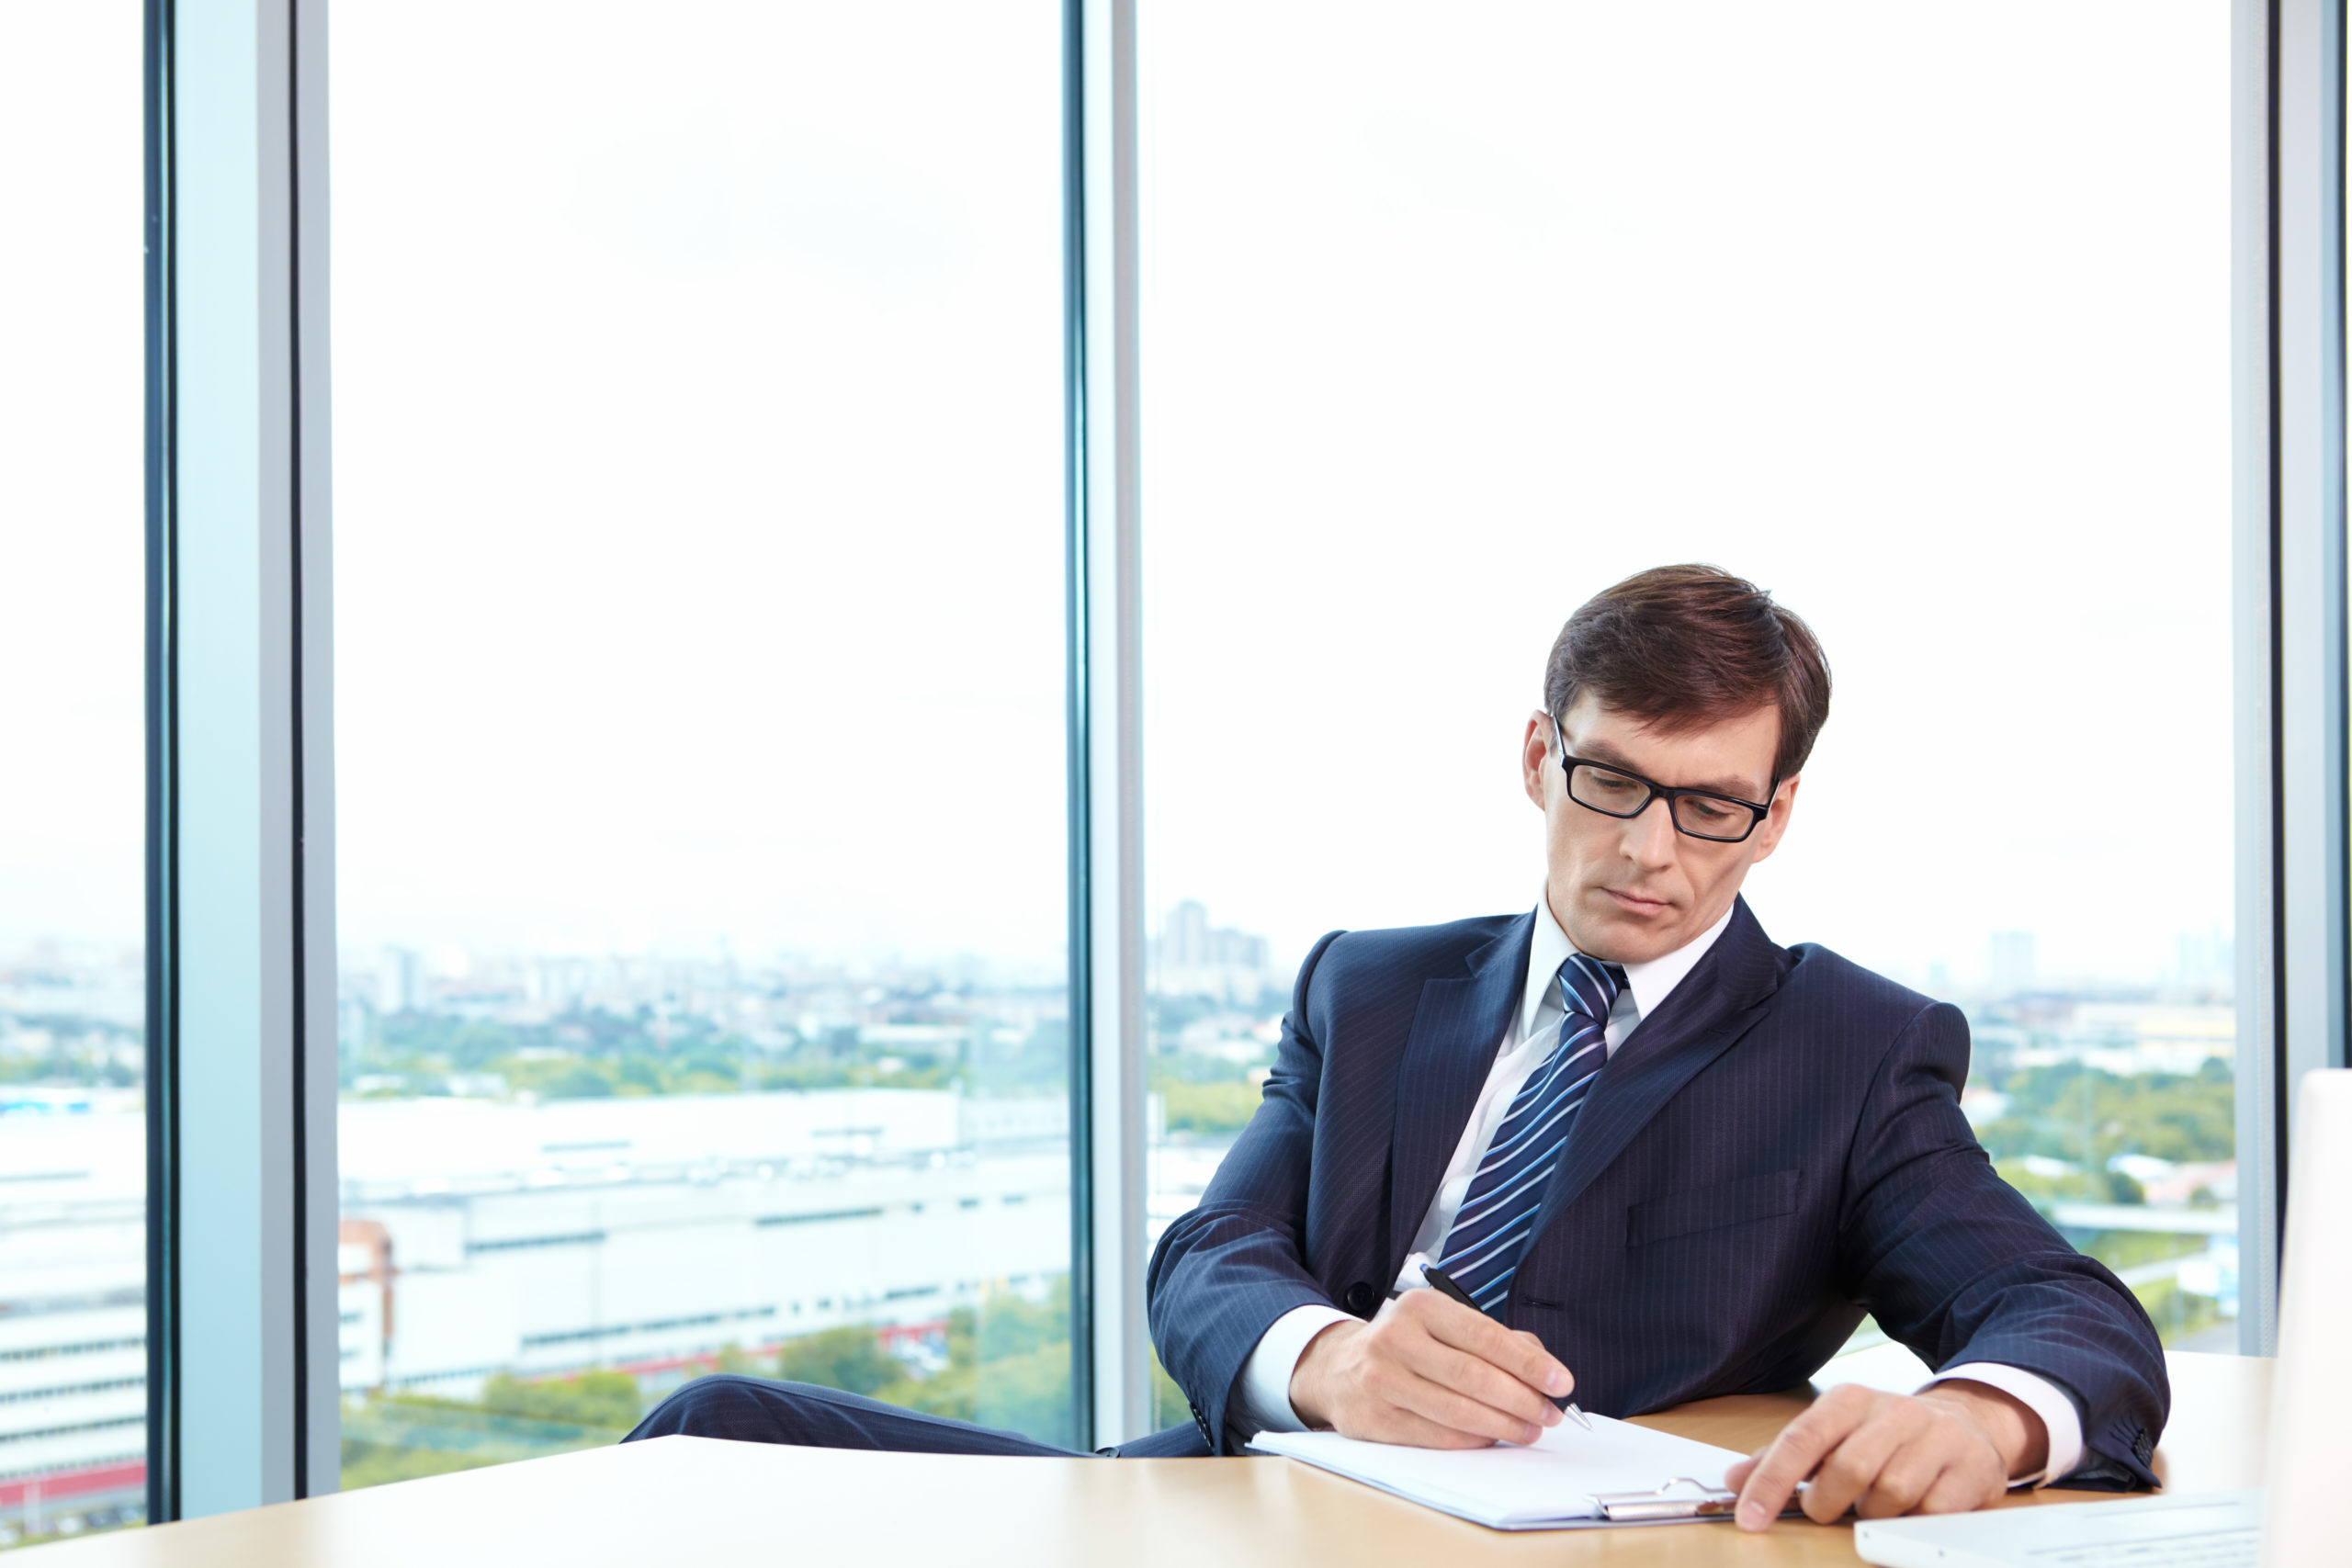 A man in business suit signs documents in the office